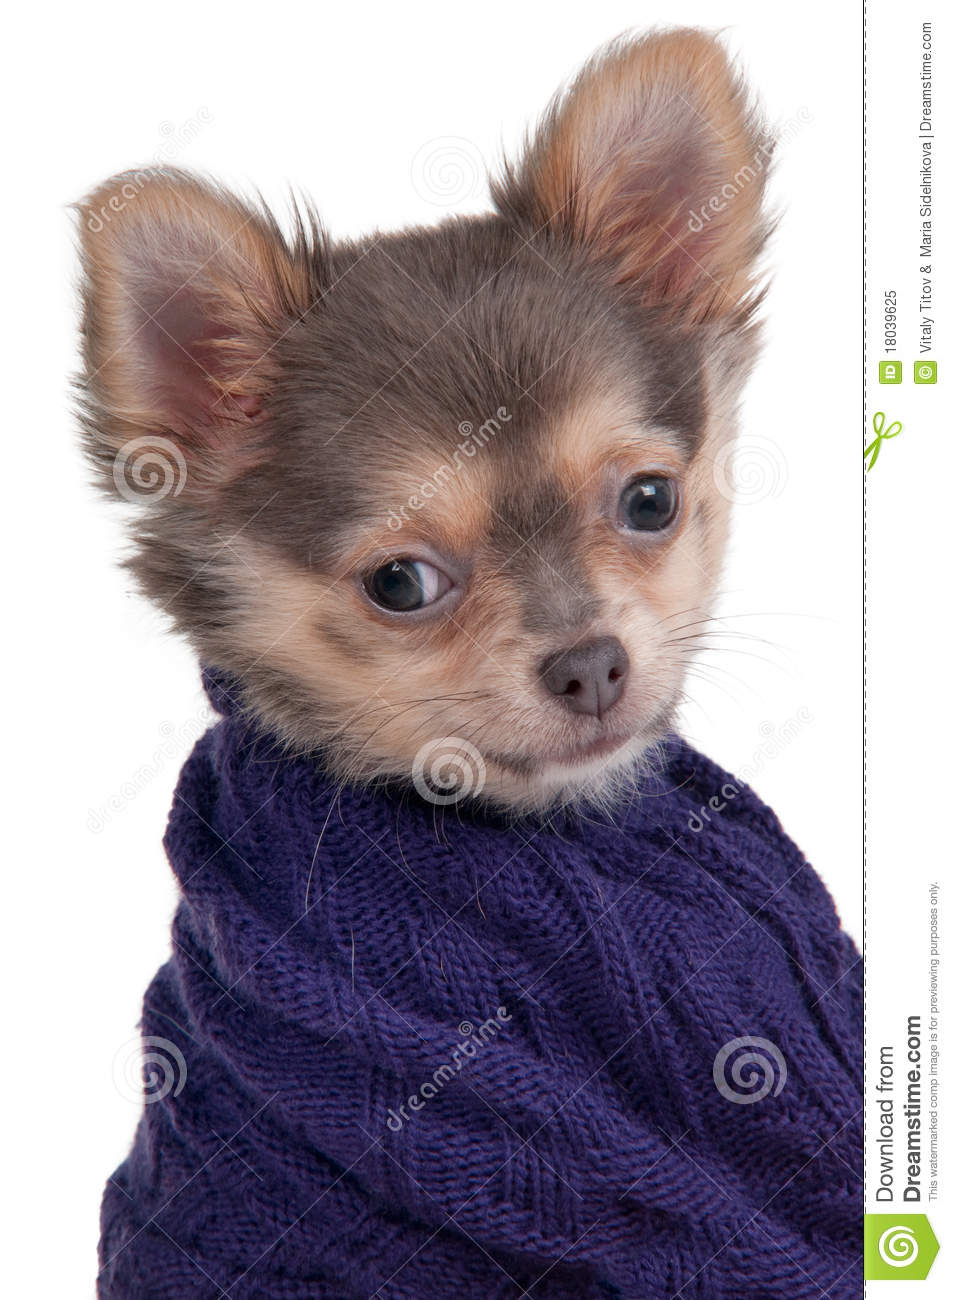 chihuahua puppy with warm sweater isolated royalty free stock photo image 18039625. Black Bedroom Furniture Sets. Home Design Ideas